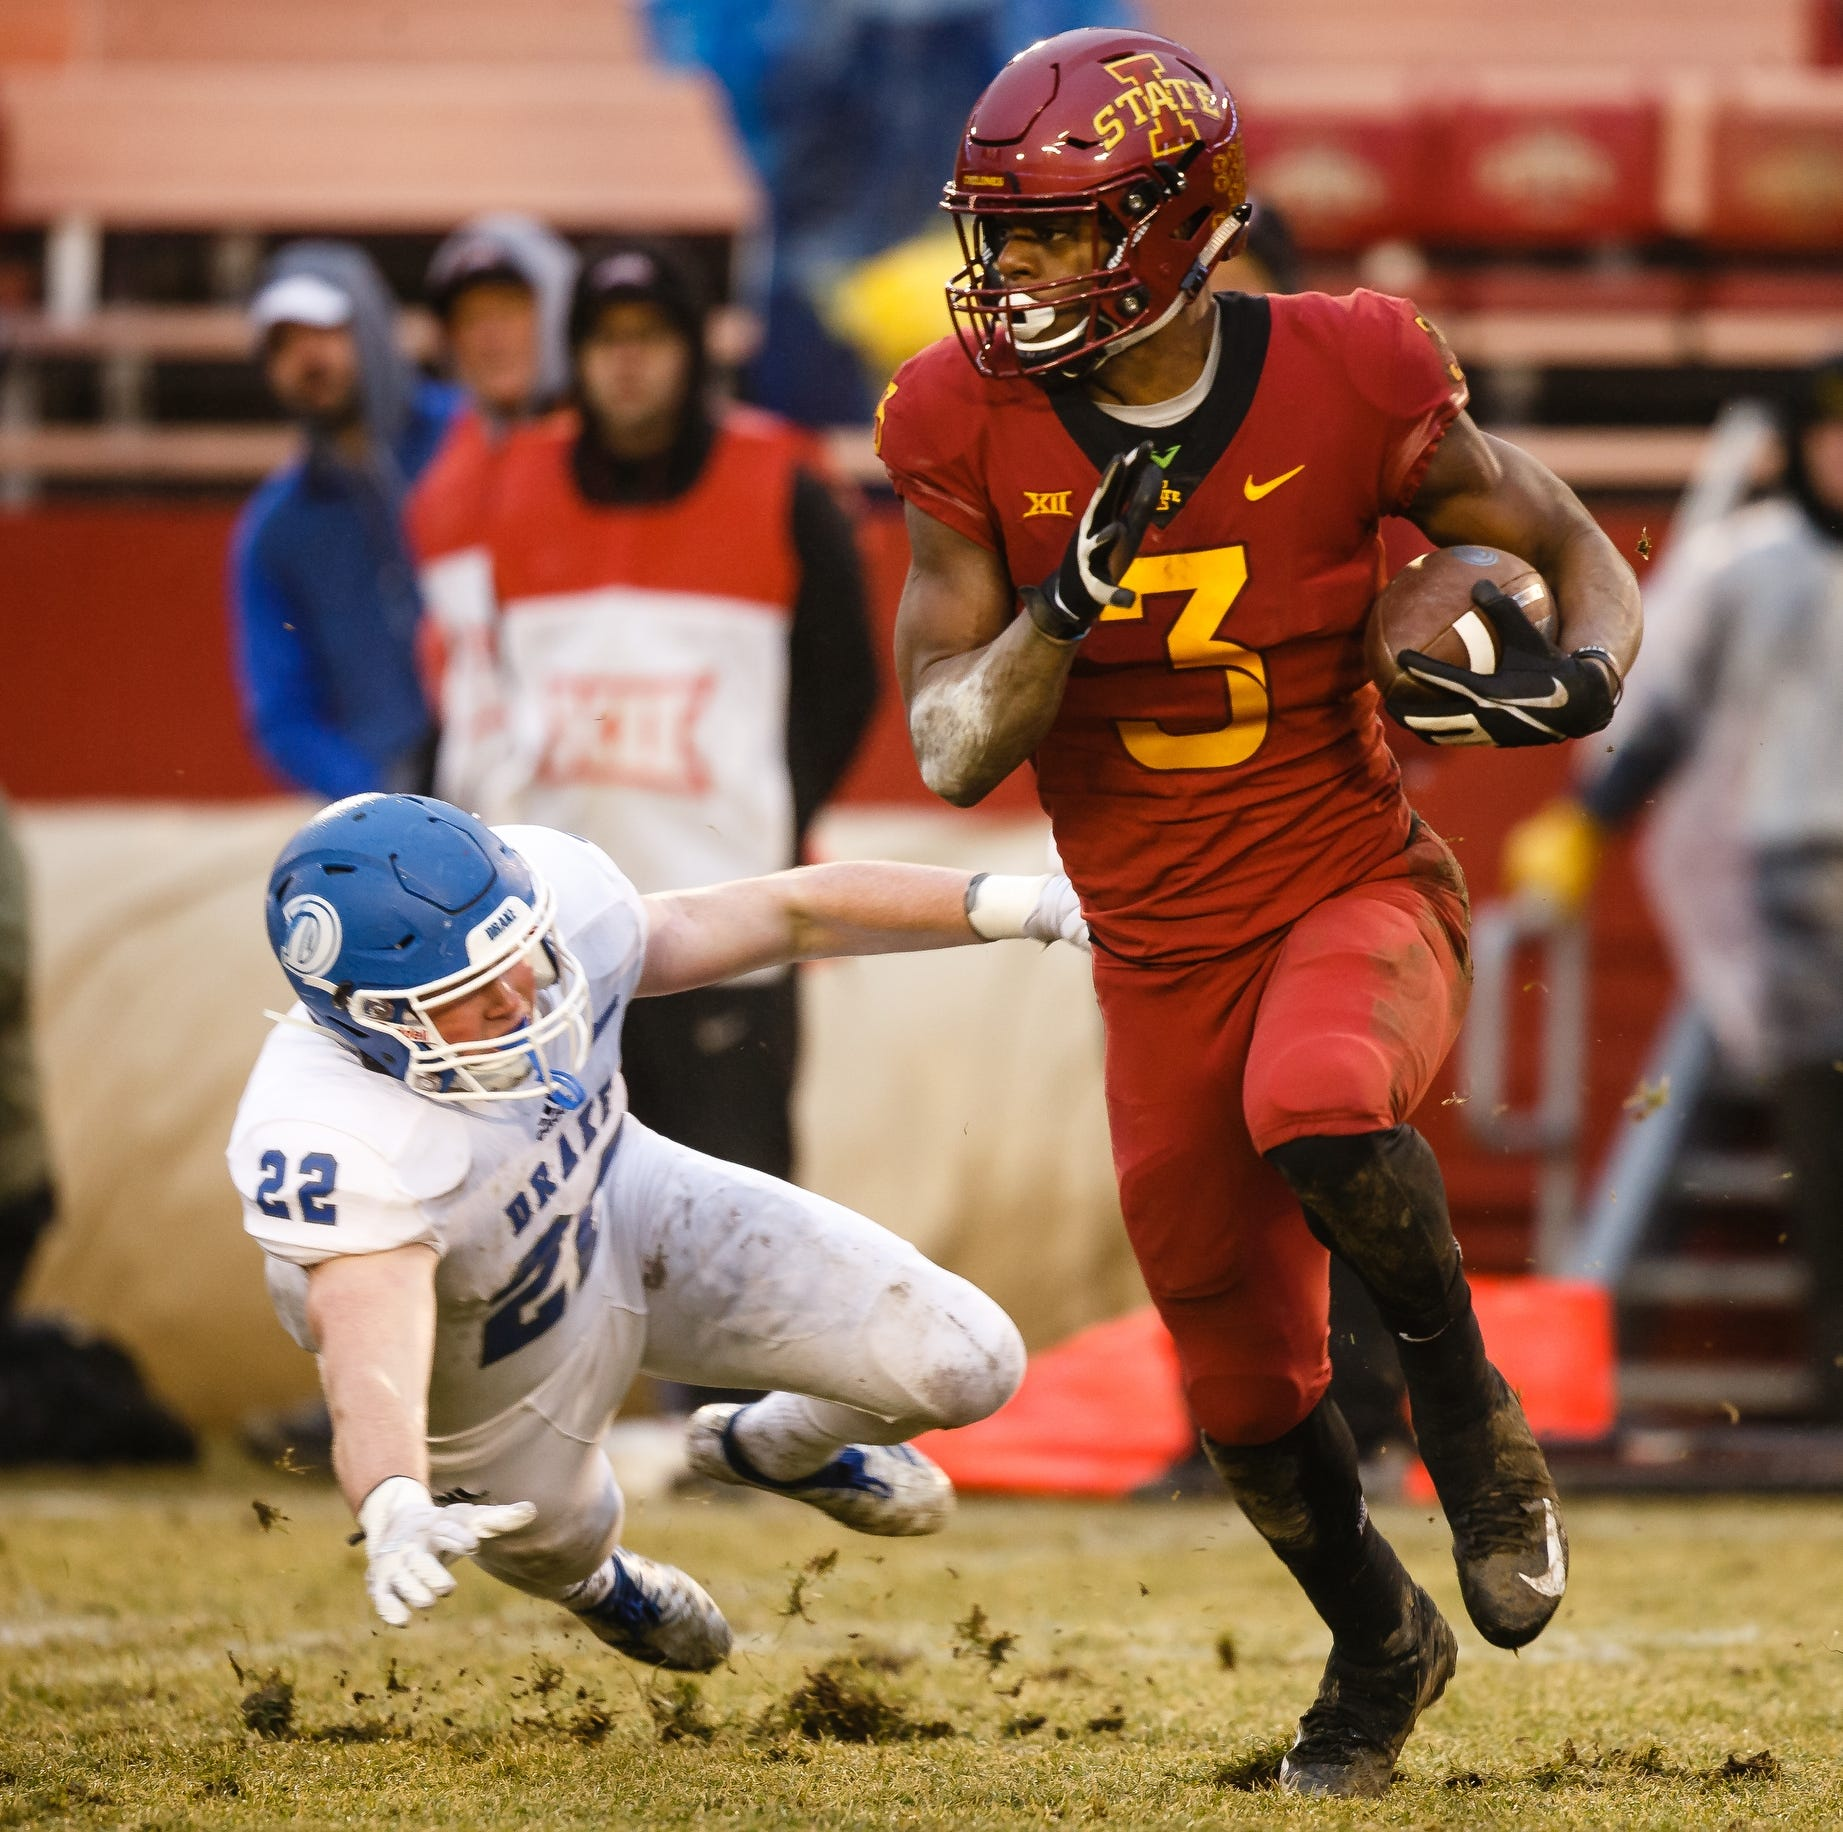 ISU takeaways: How the battle for the starting running back spot is shaping up